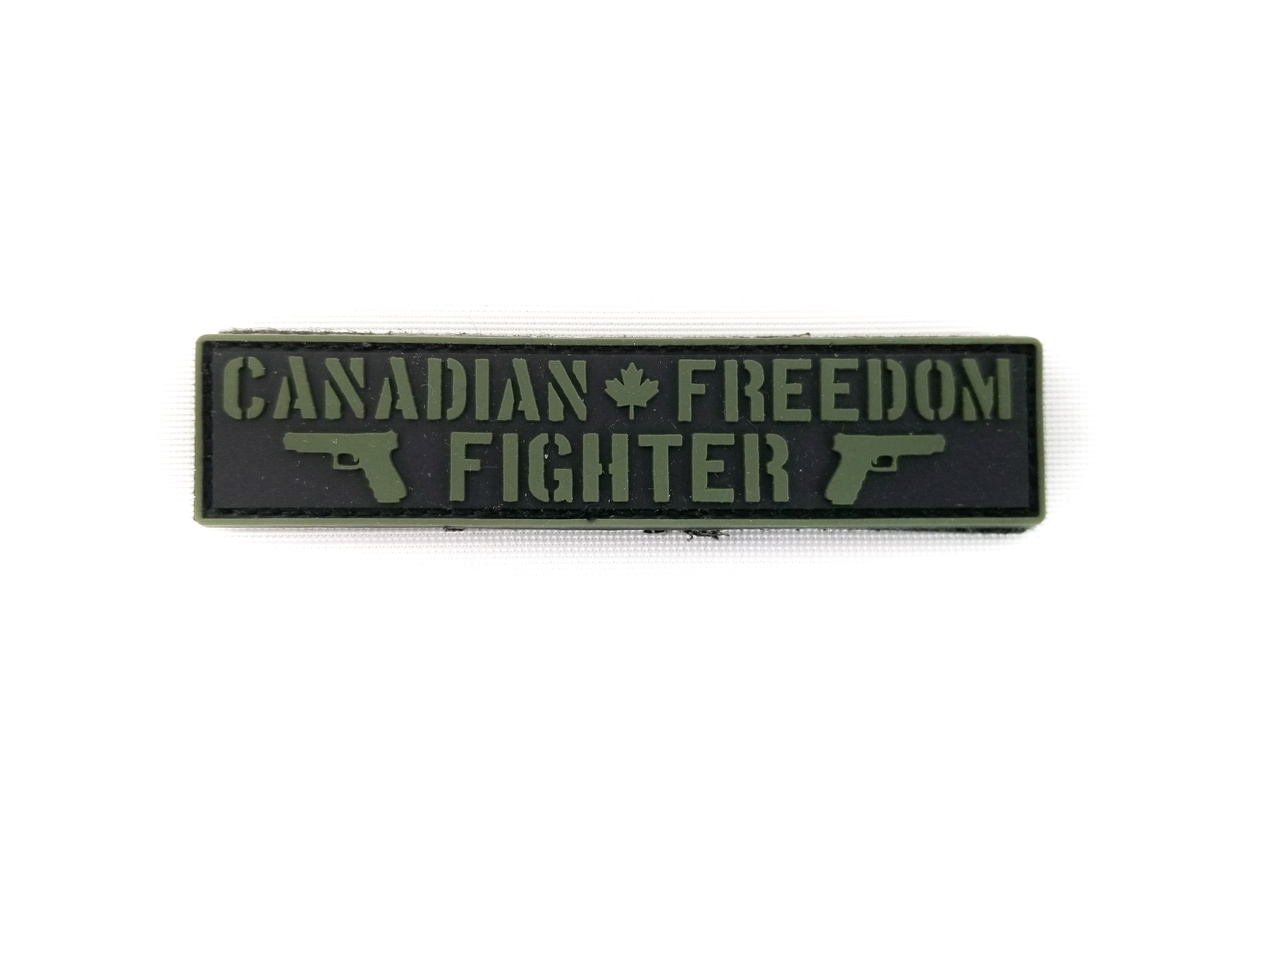 Tactical Innovations Canada PVC Patch - Canadian Freedom Fighter Black/OD